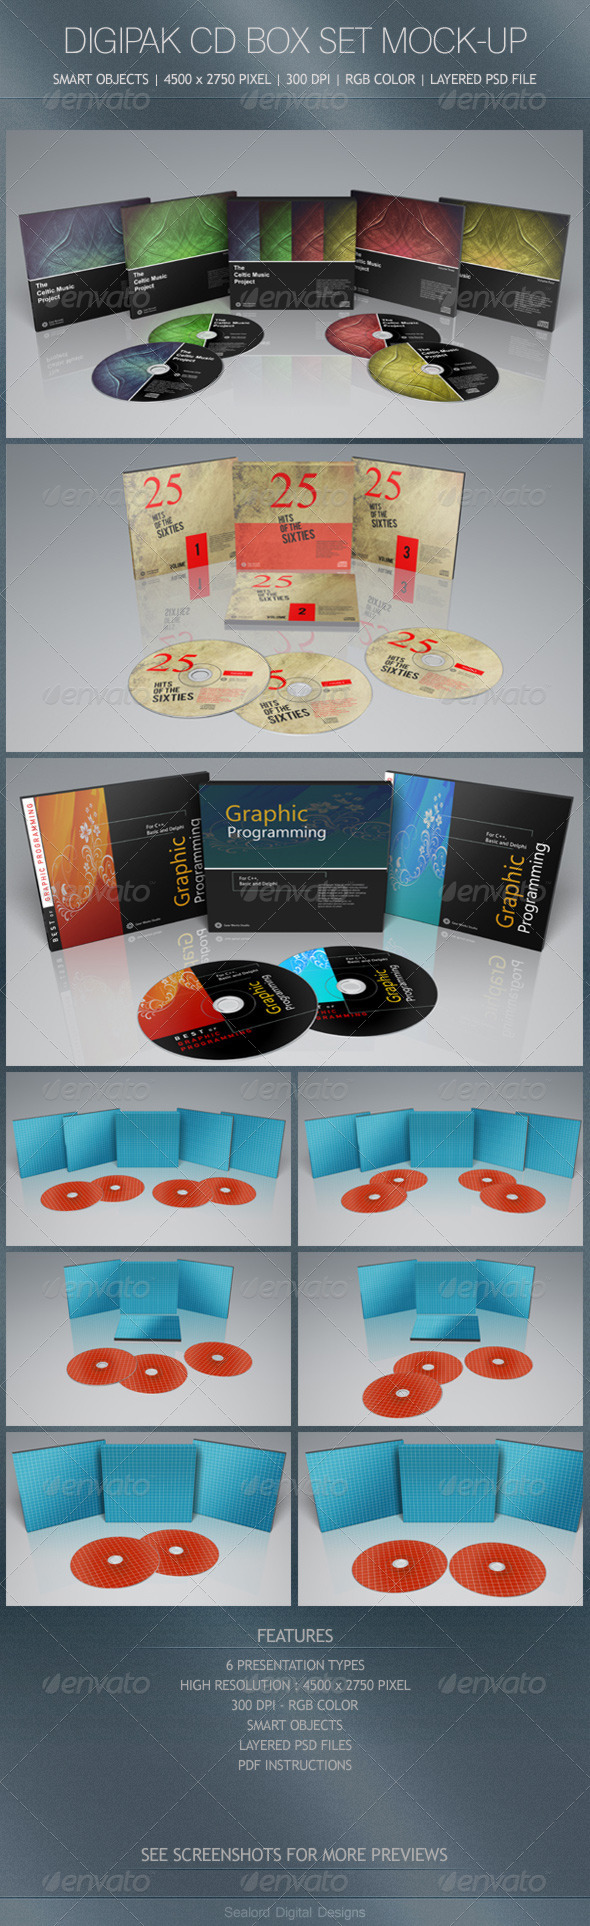 Digipak CD Box Set Mock-Up